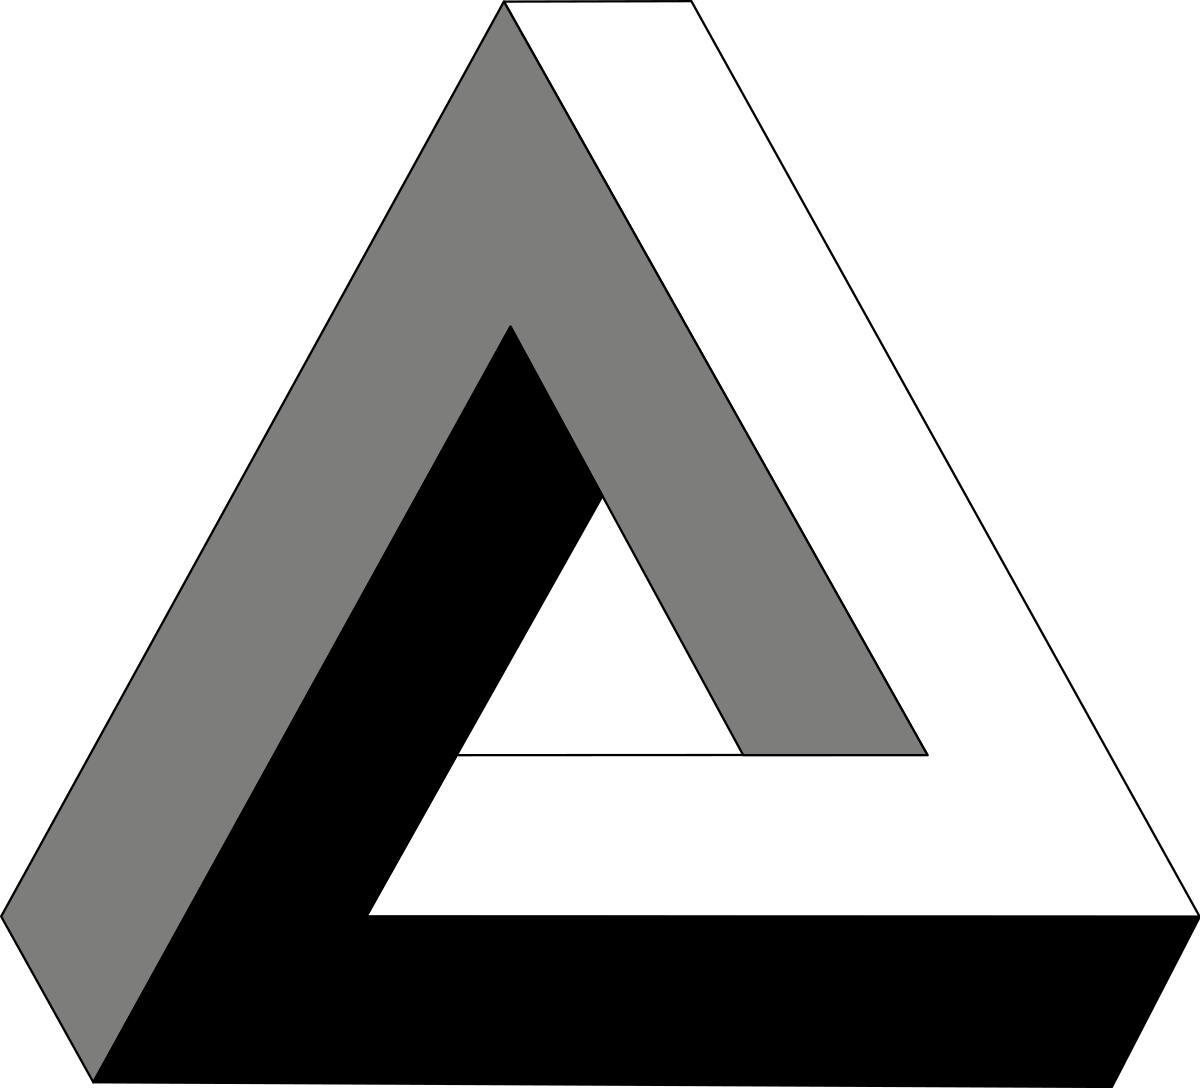 4d drawing illusion. Penrose triangle wikipedia